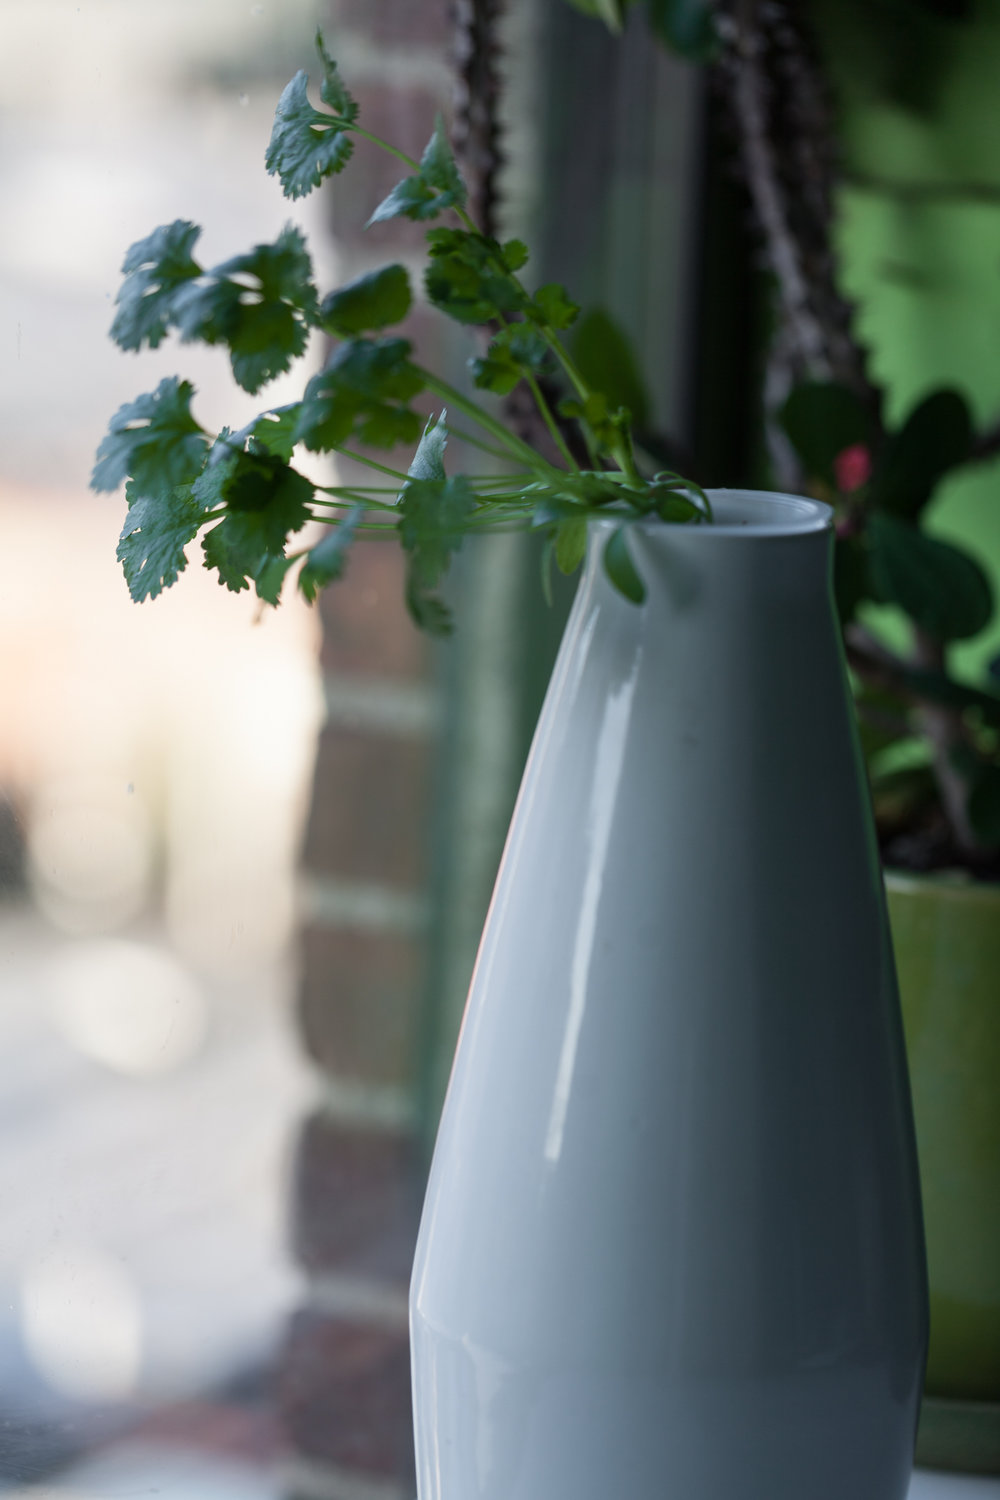 I have a couple hydroponic Amphora vases from Cloud Farms, which I like to grown cilantro and basil out of.